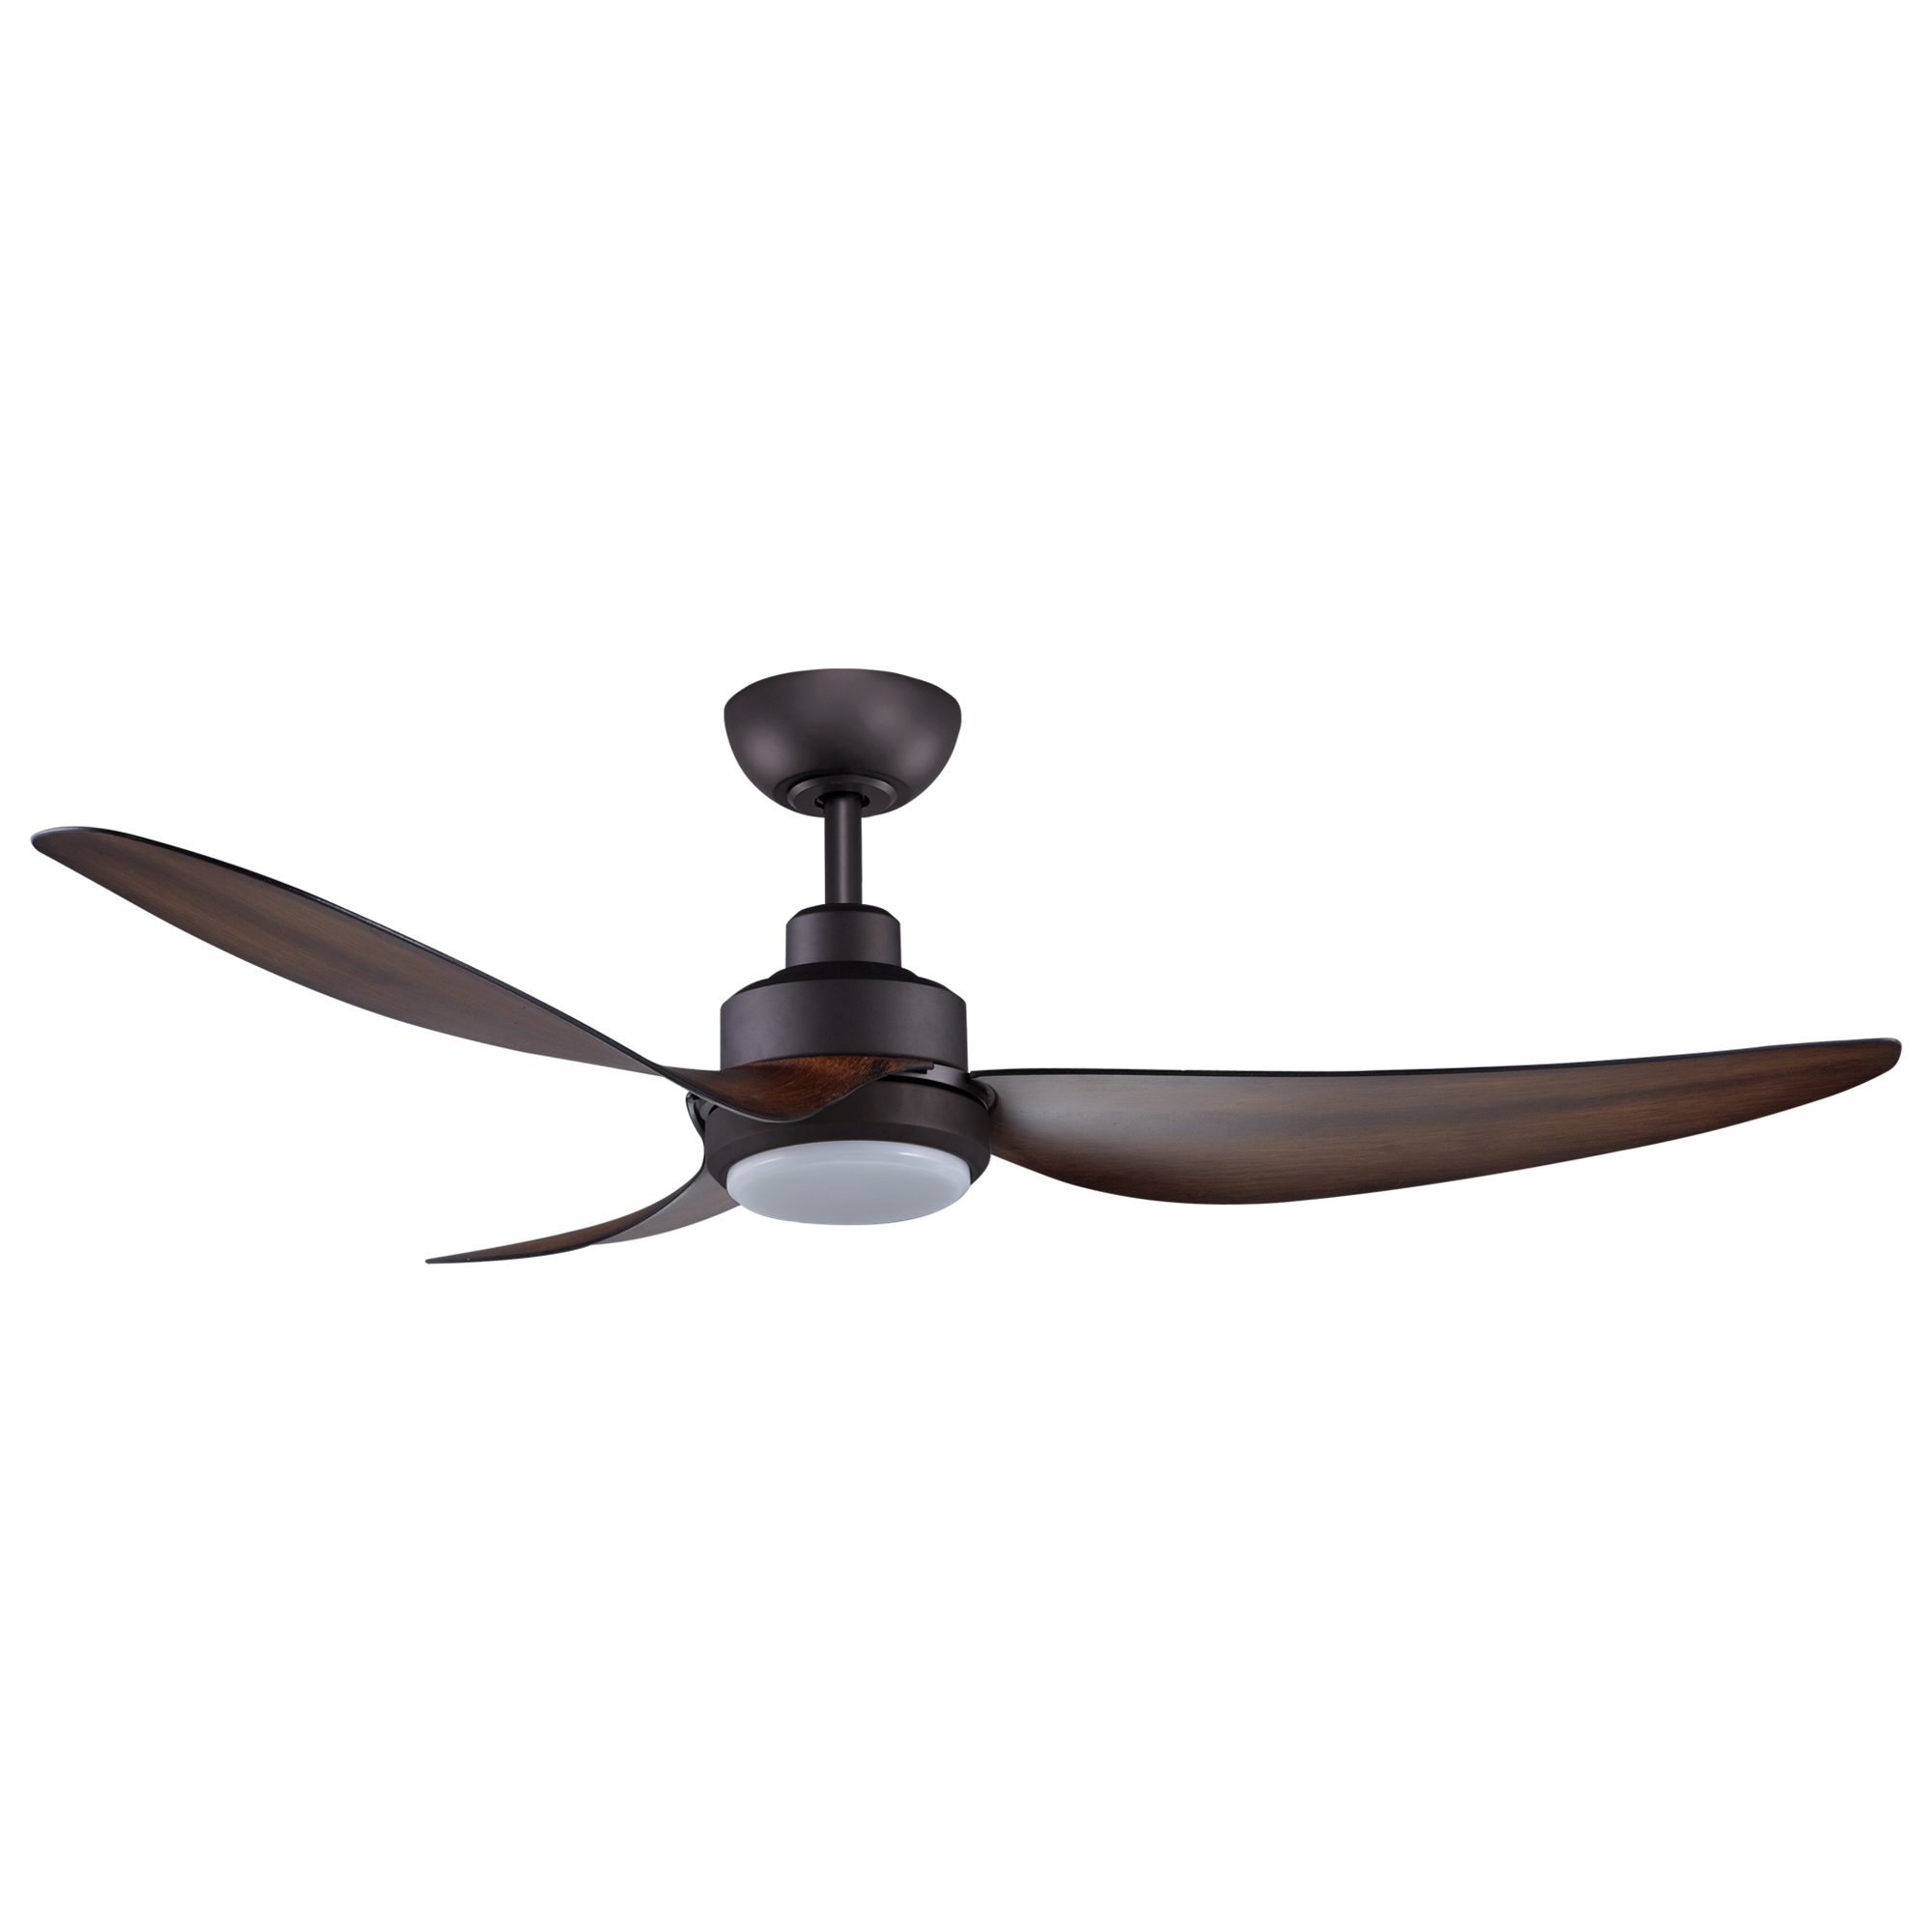 """56"""" Trinity DC Ceiling Fan in Oil-rubbed Bronze with Koa blades and 20W LED Light"""